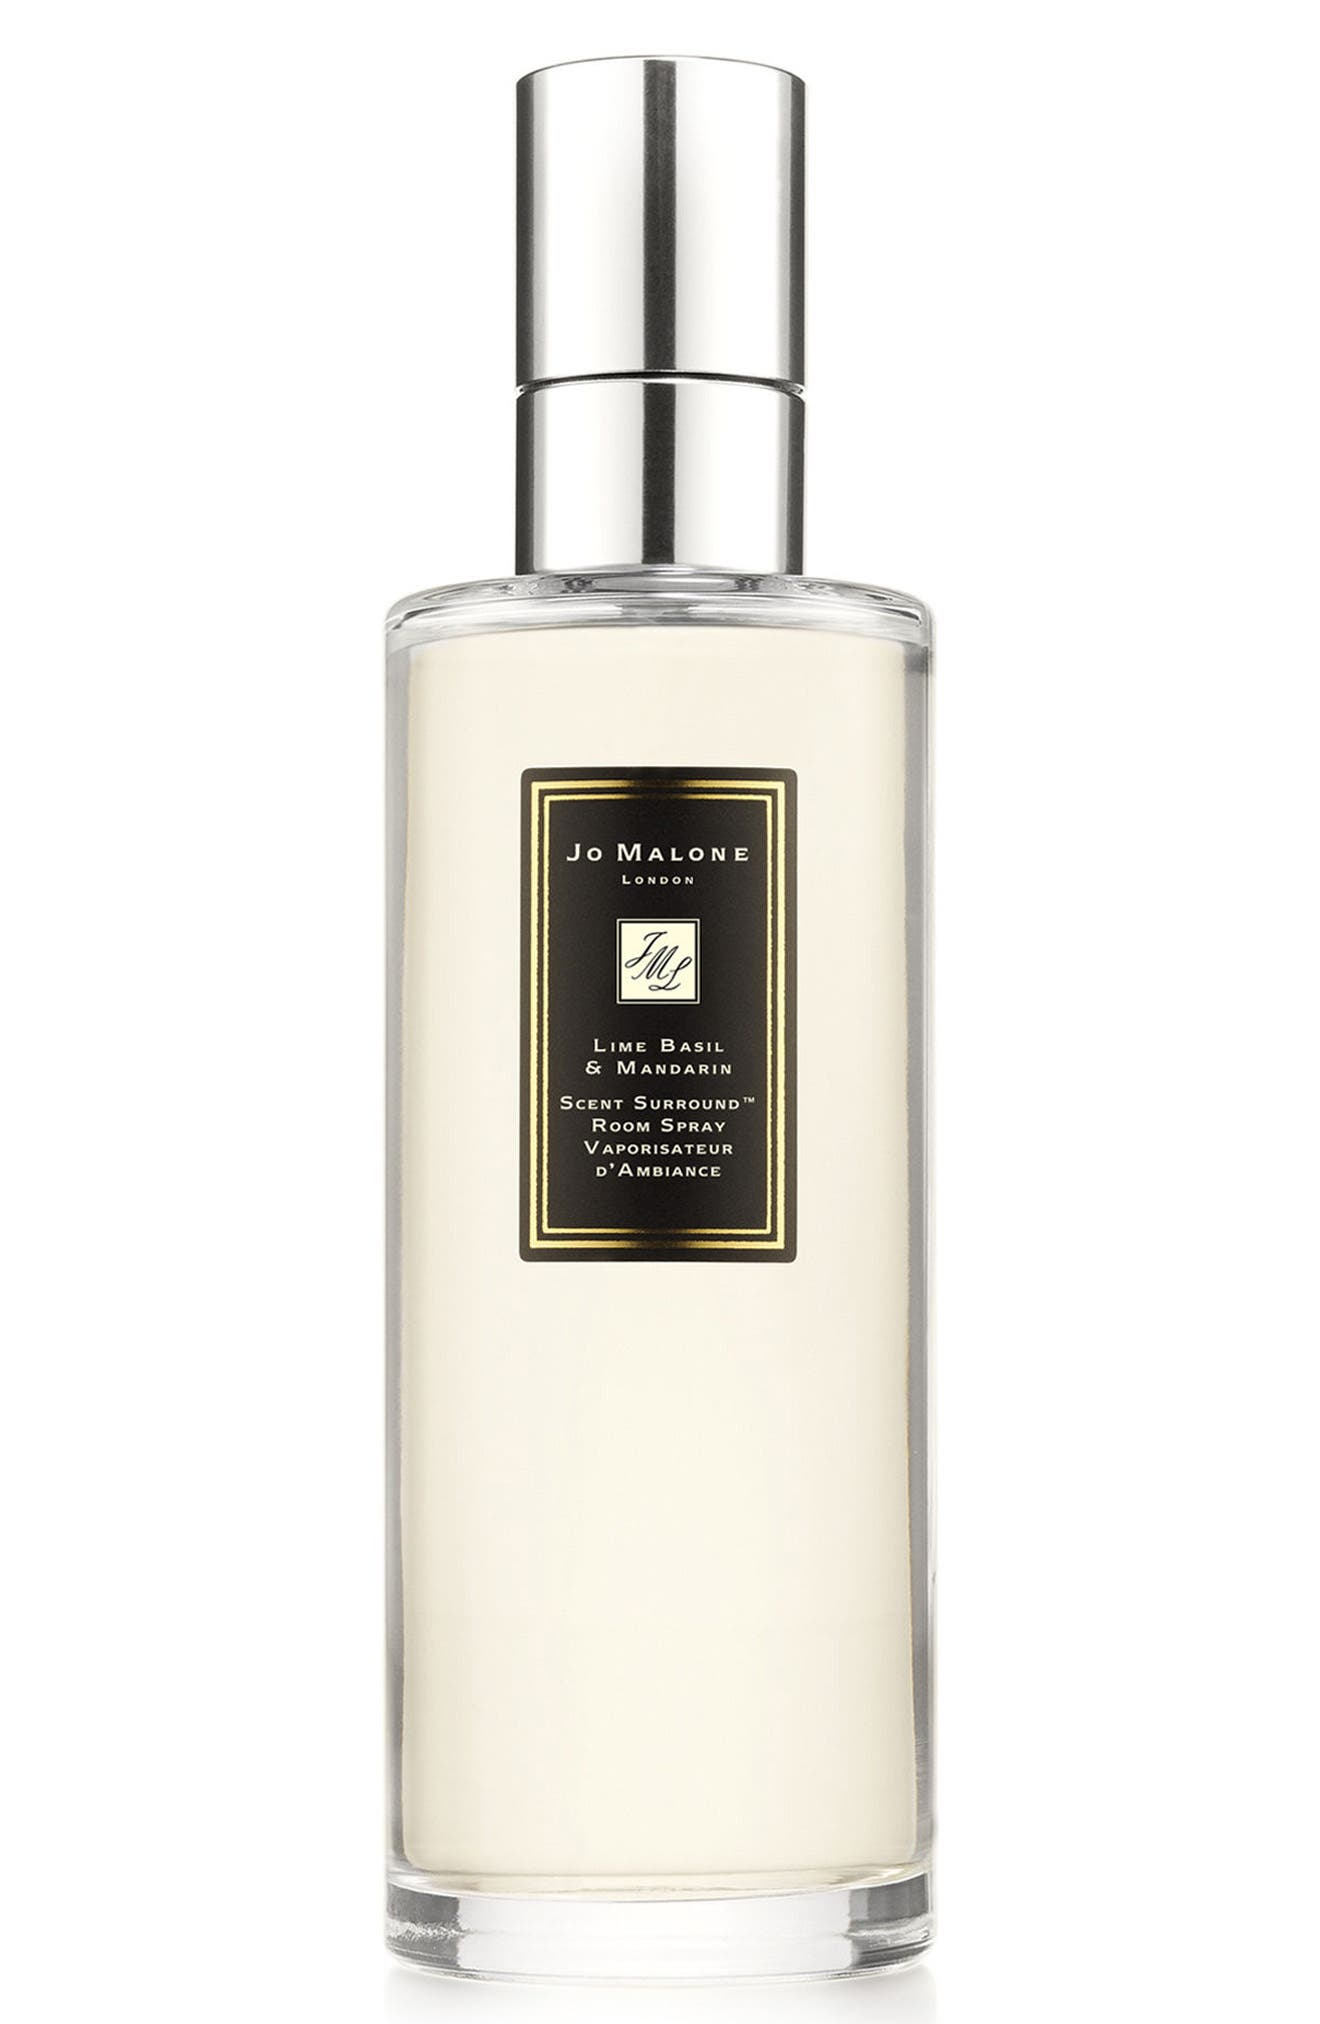 Jo Malone™ 'Lime Basil & Mandarin' Scent Surround™ Room Spray